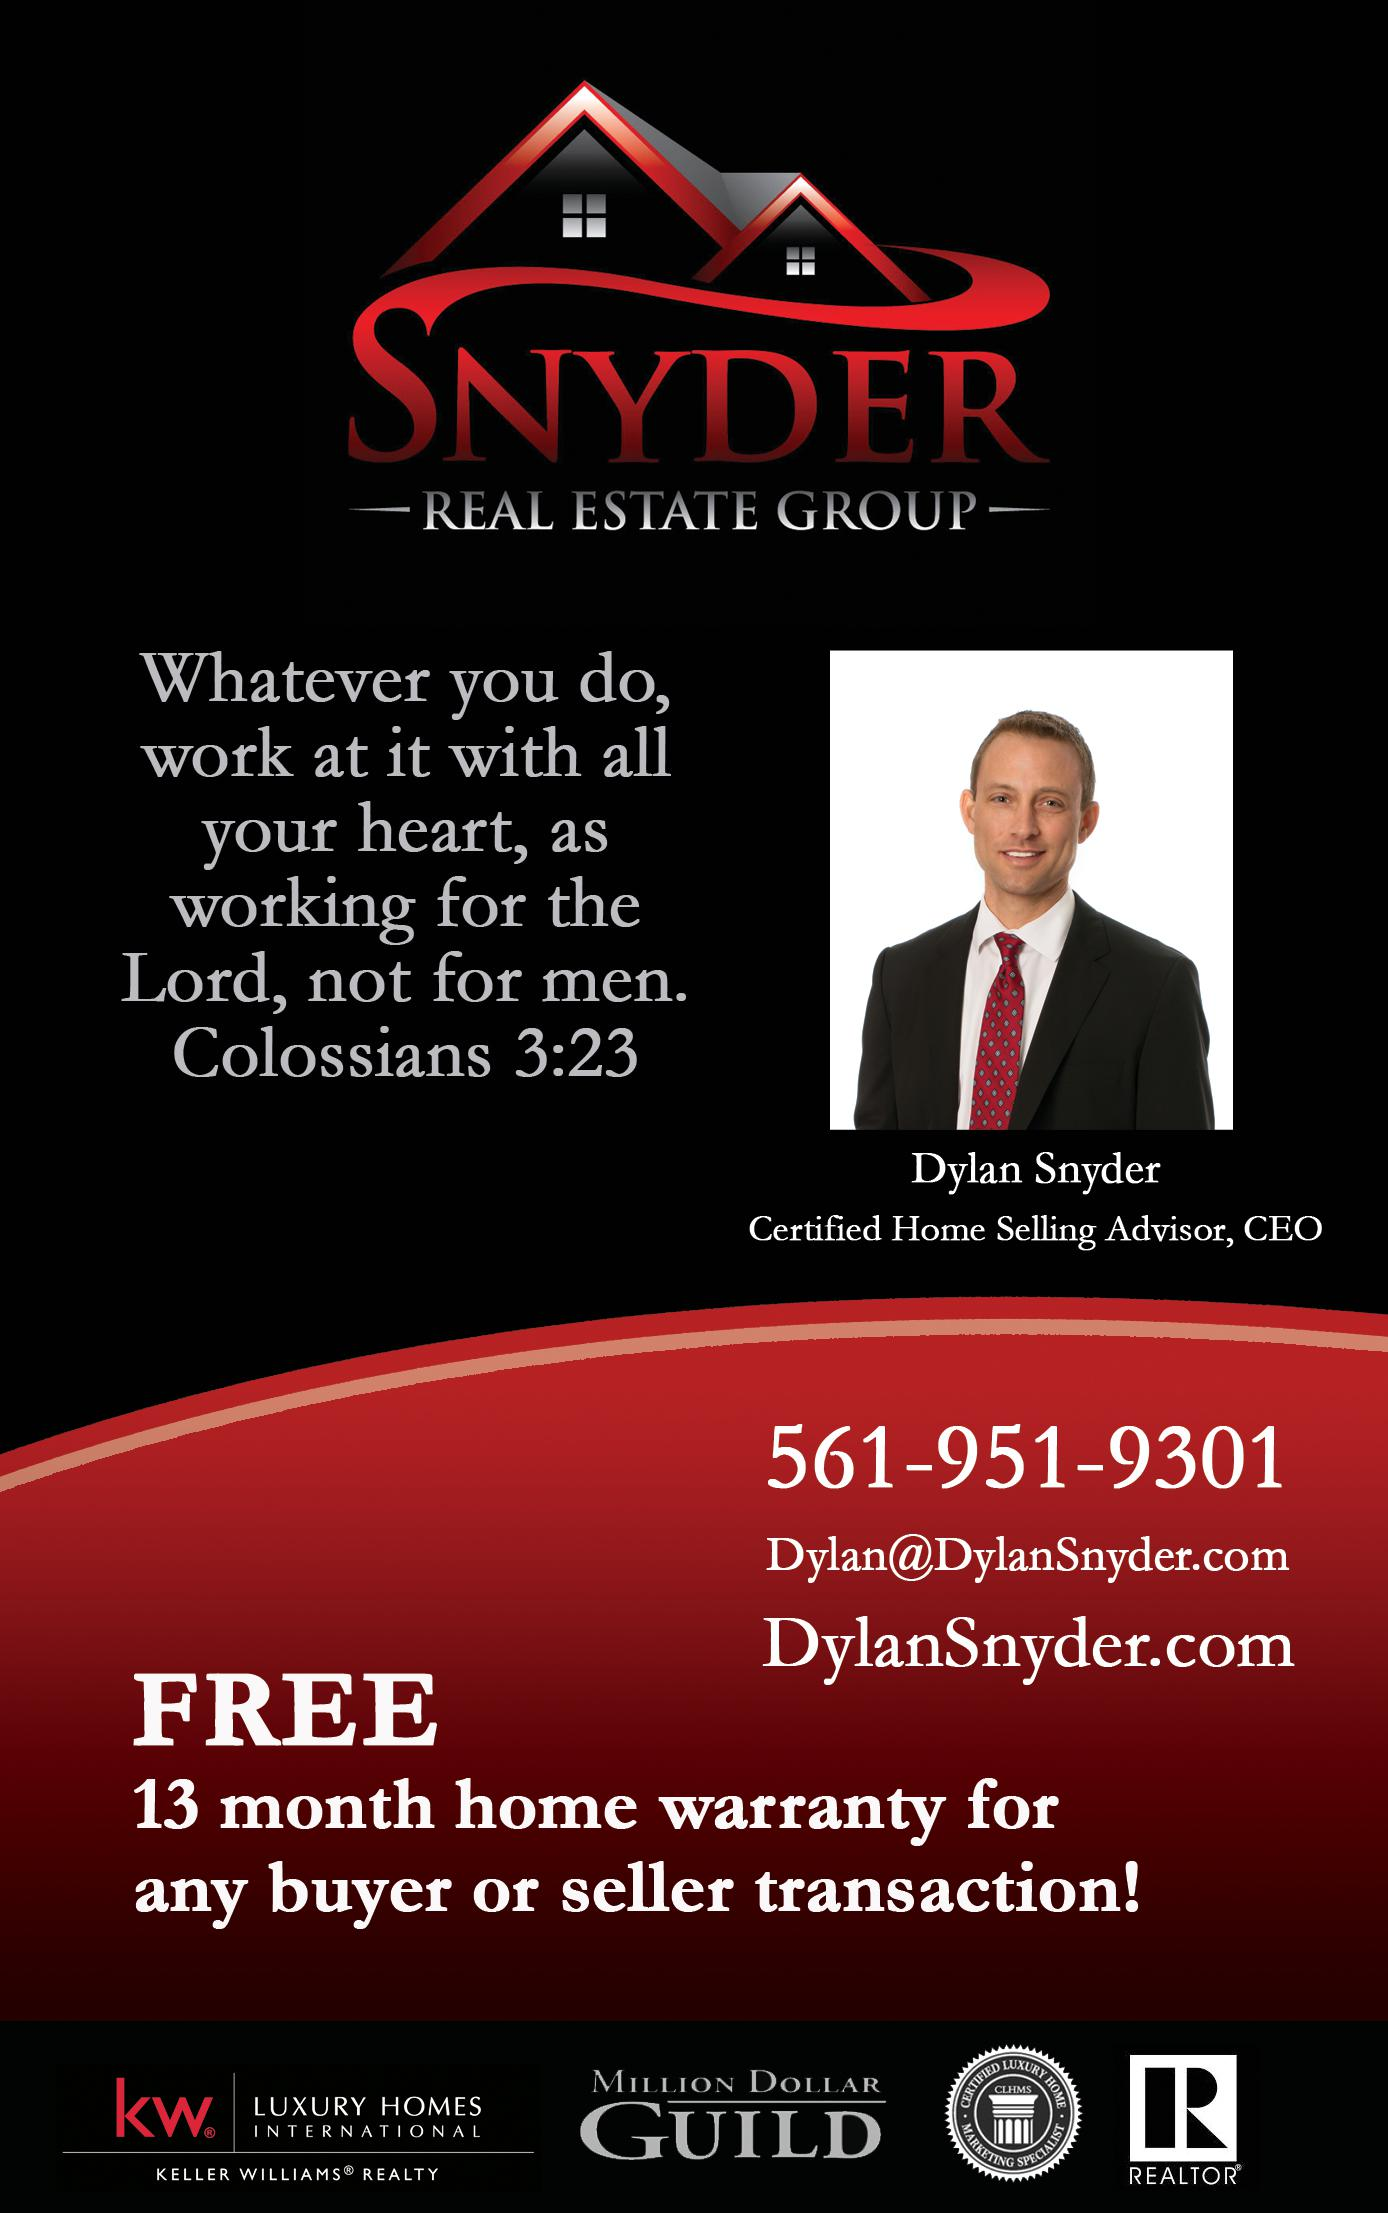 The Snyder Group at Keller Williams